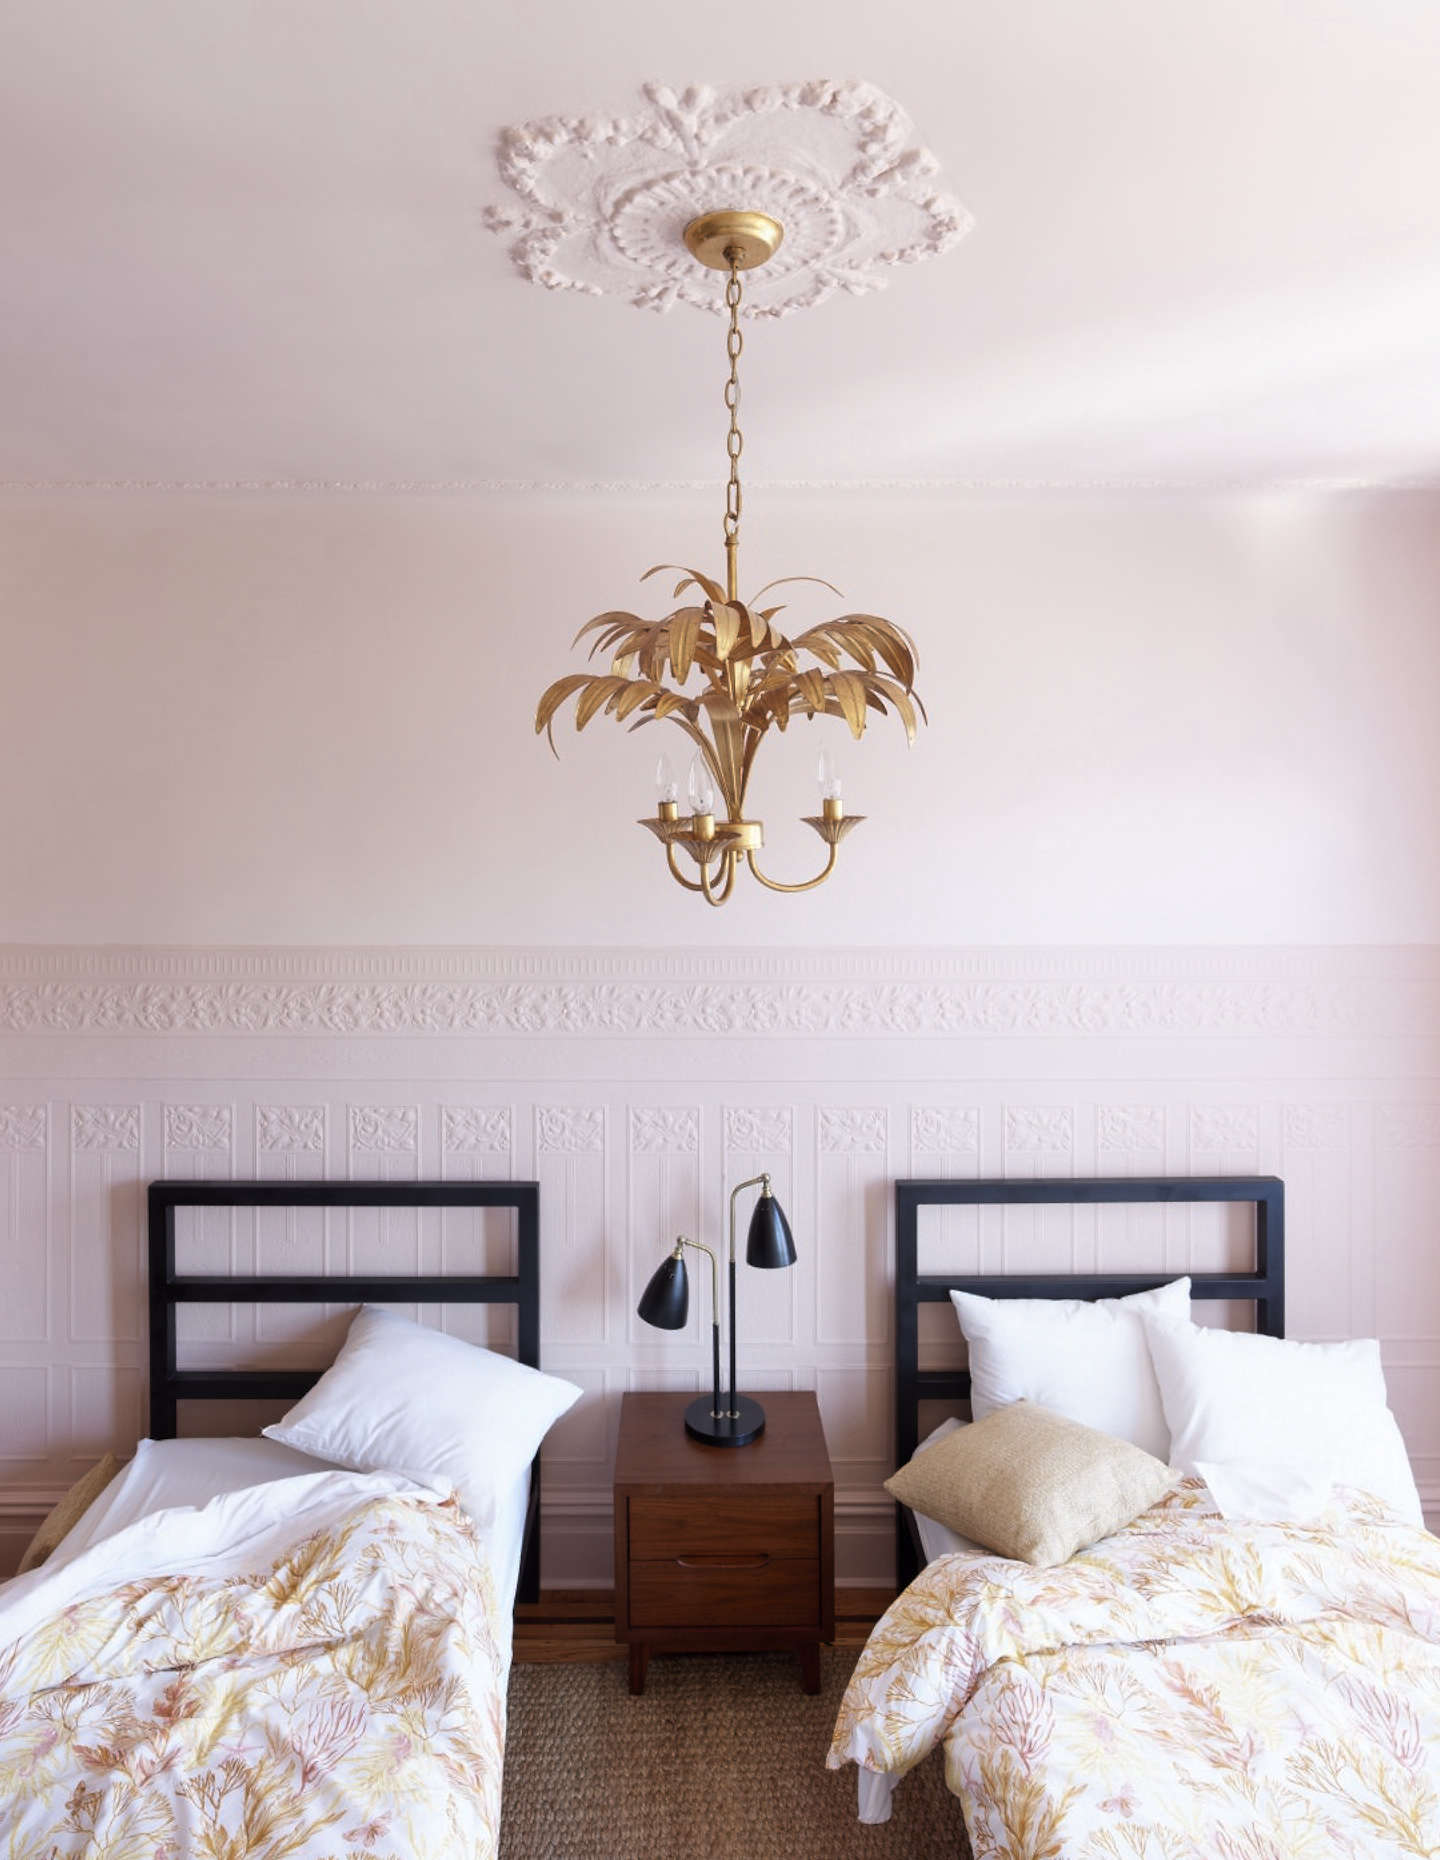 The girls' room has a pink-on-pink scheme tempered by black and a bit of irreverence.